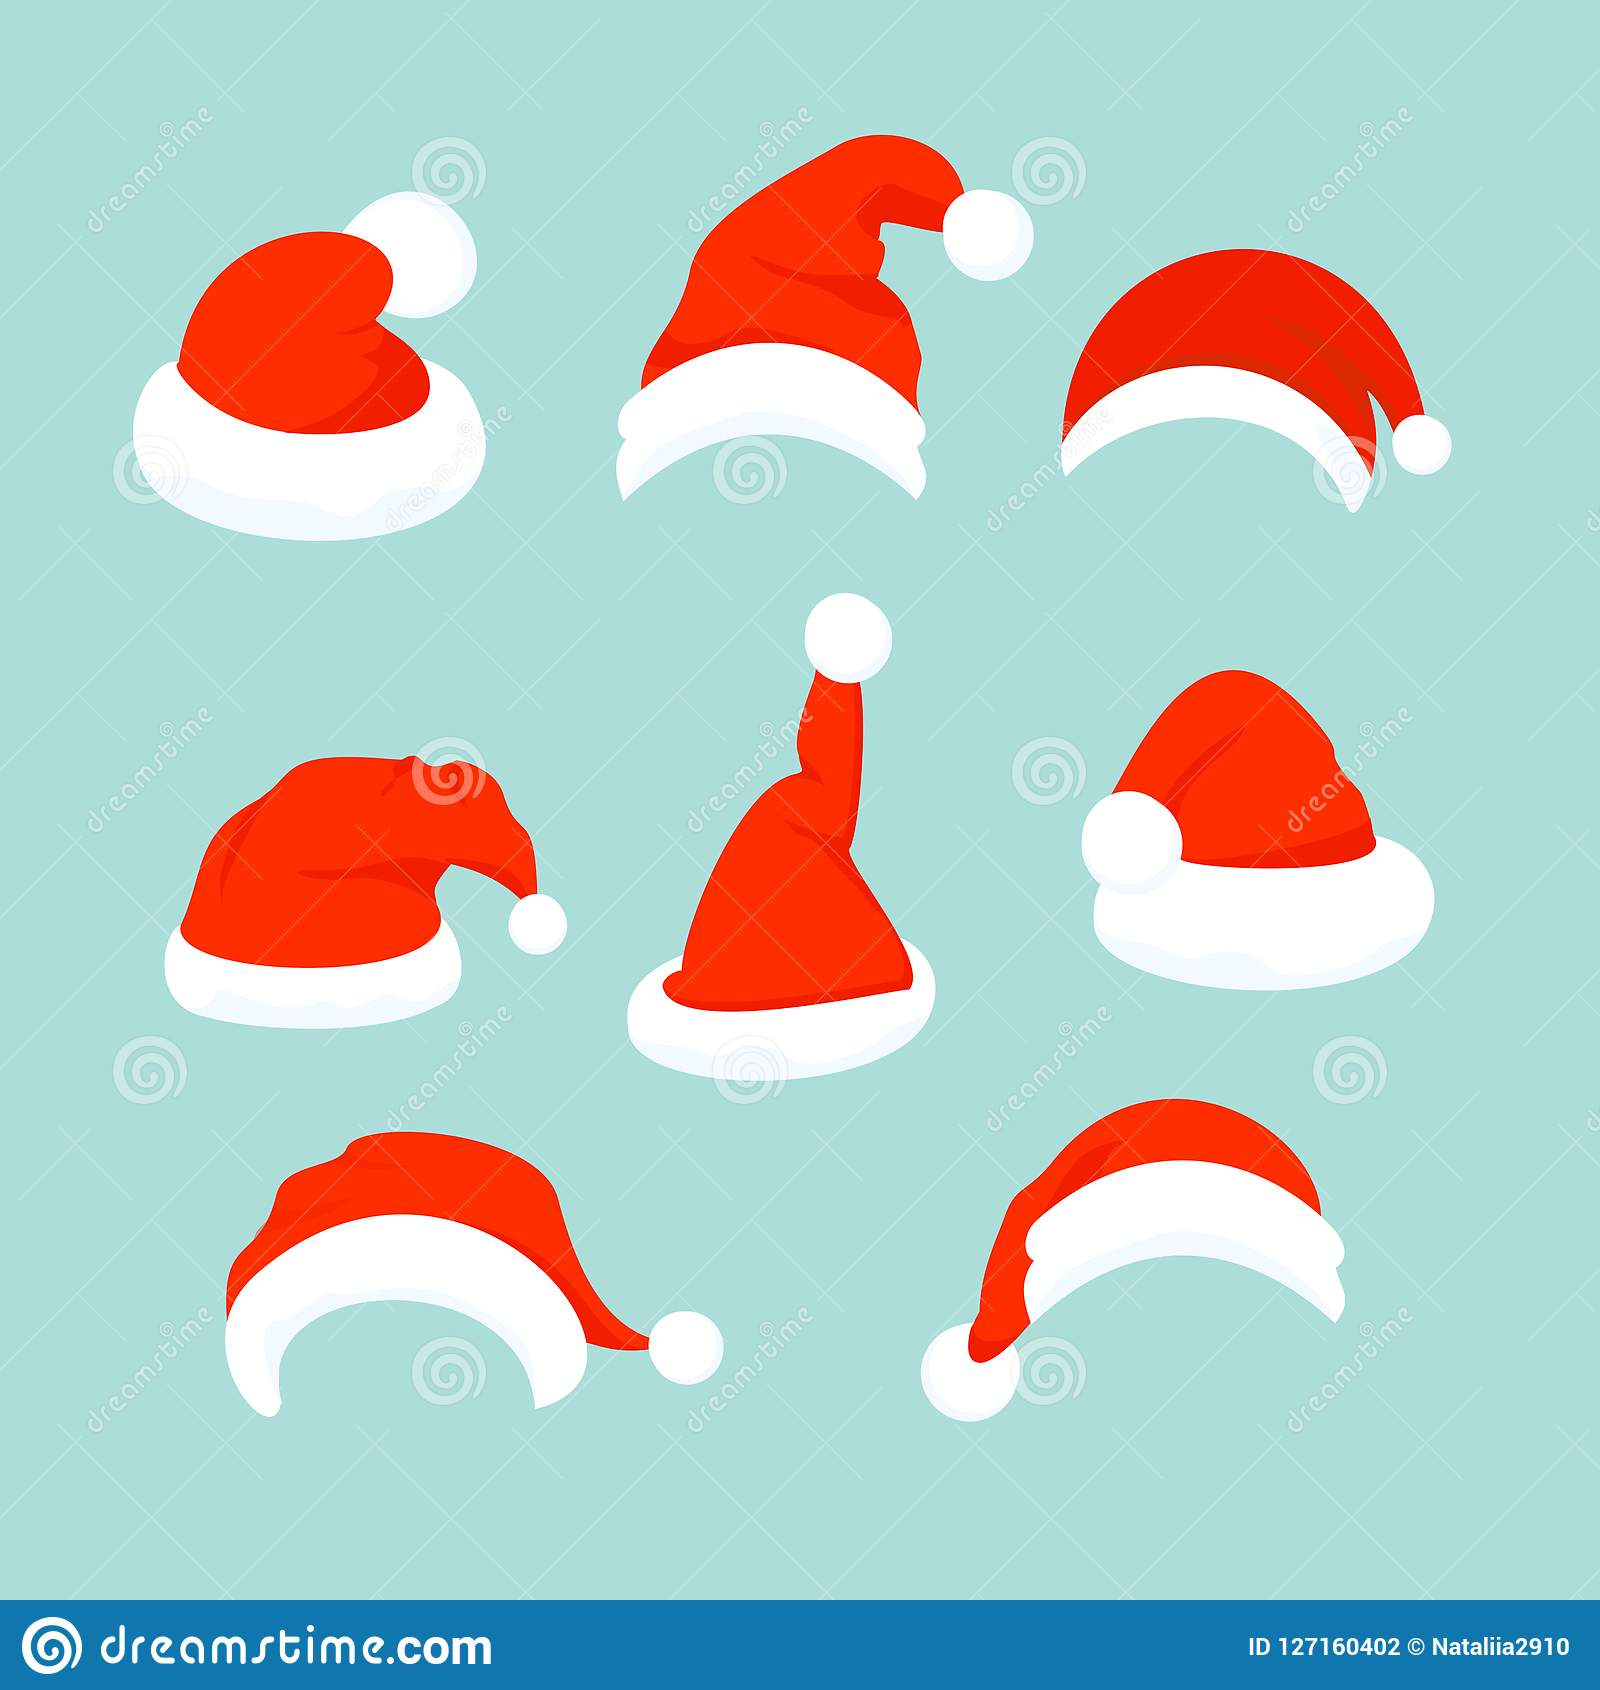 Vector illustration of set of Santa Hats in flat cartoon design.